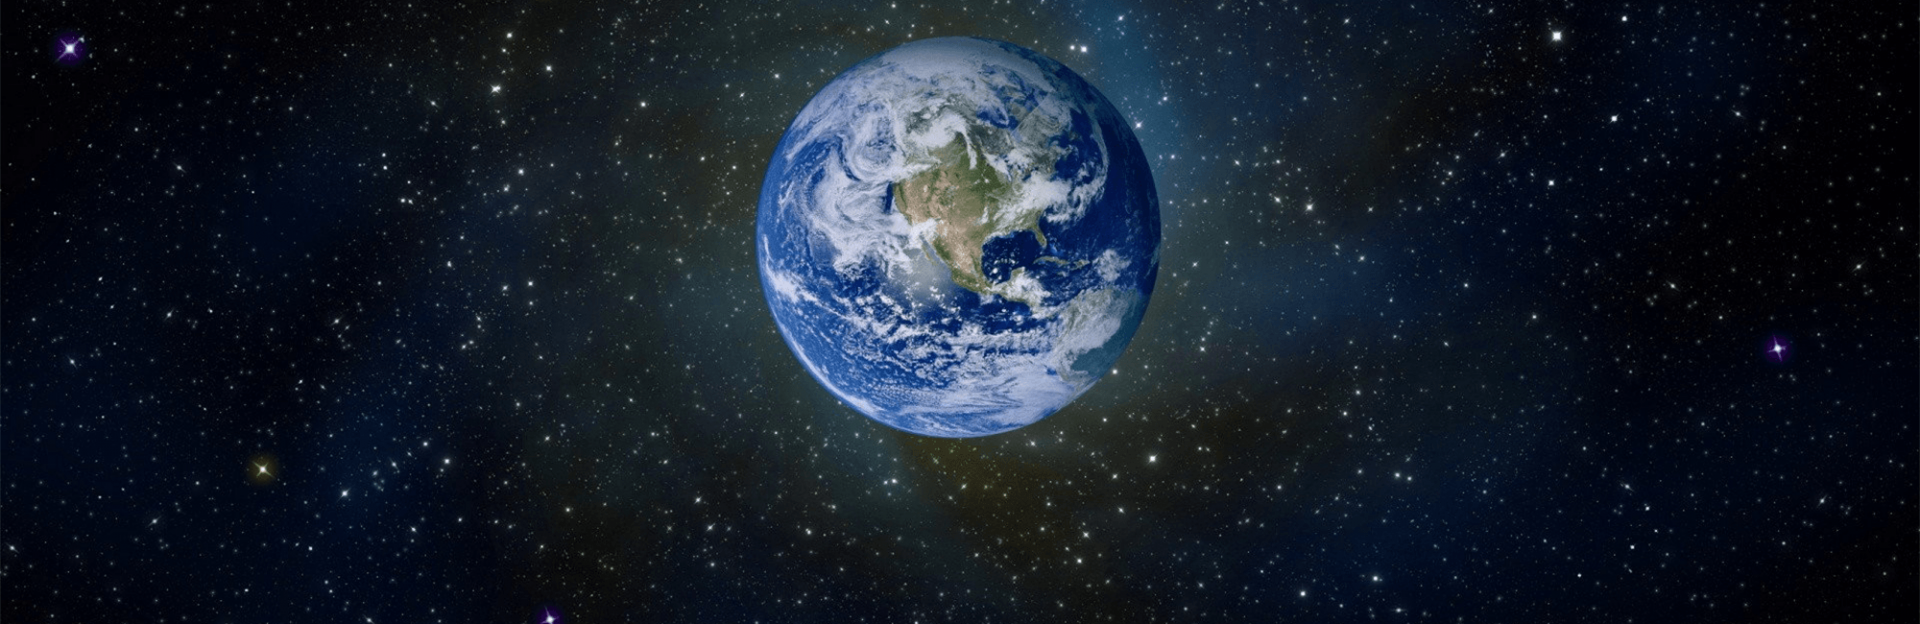 earth and universe homepage hero image